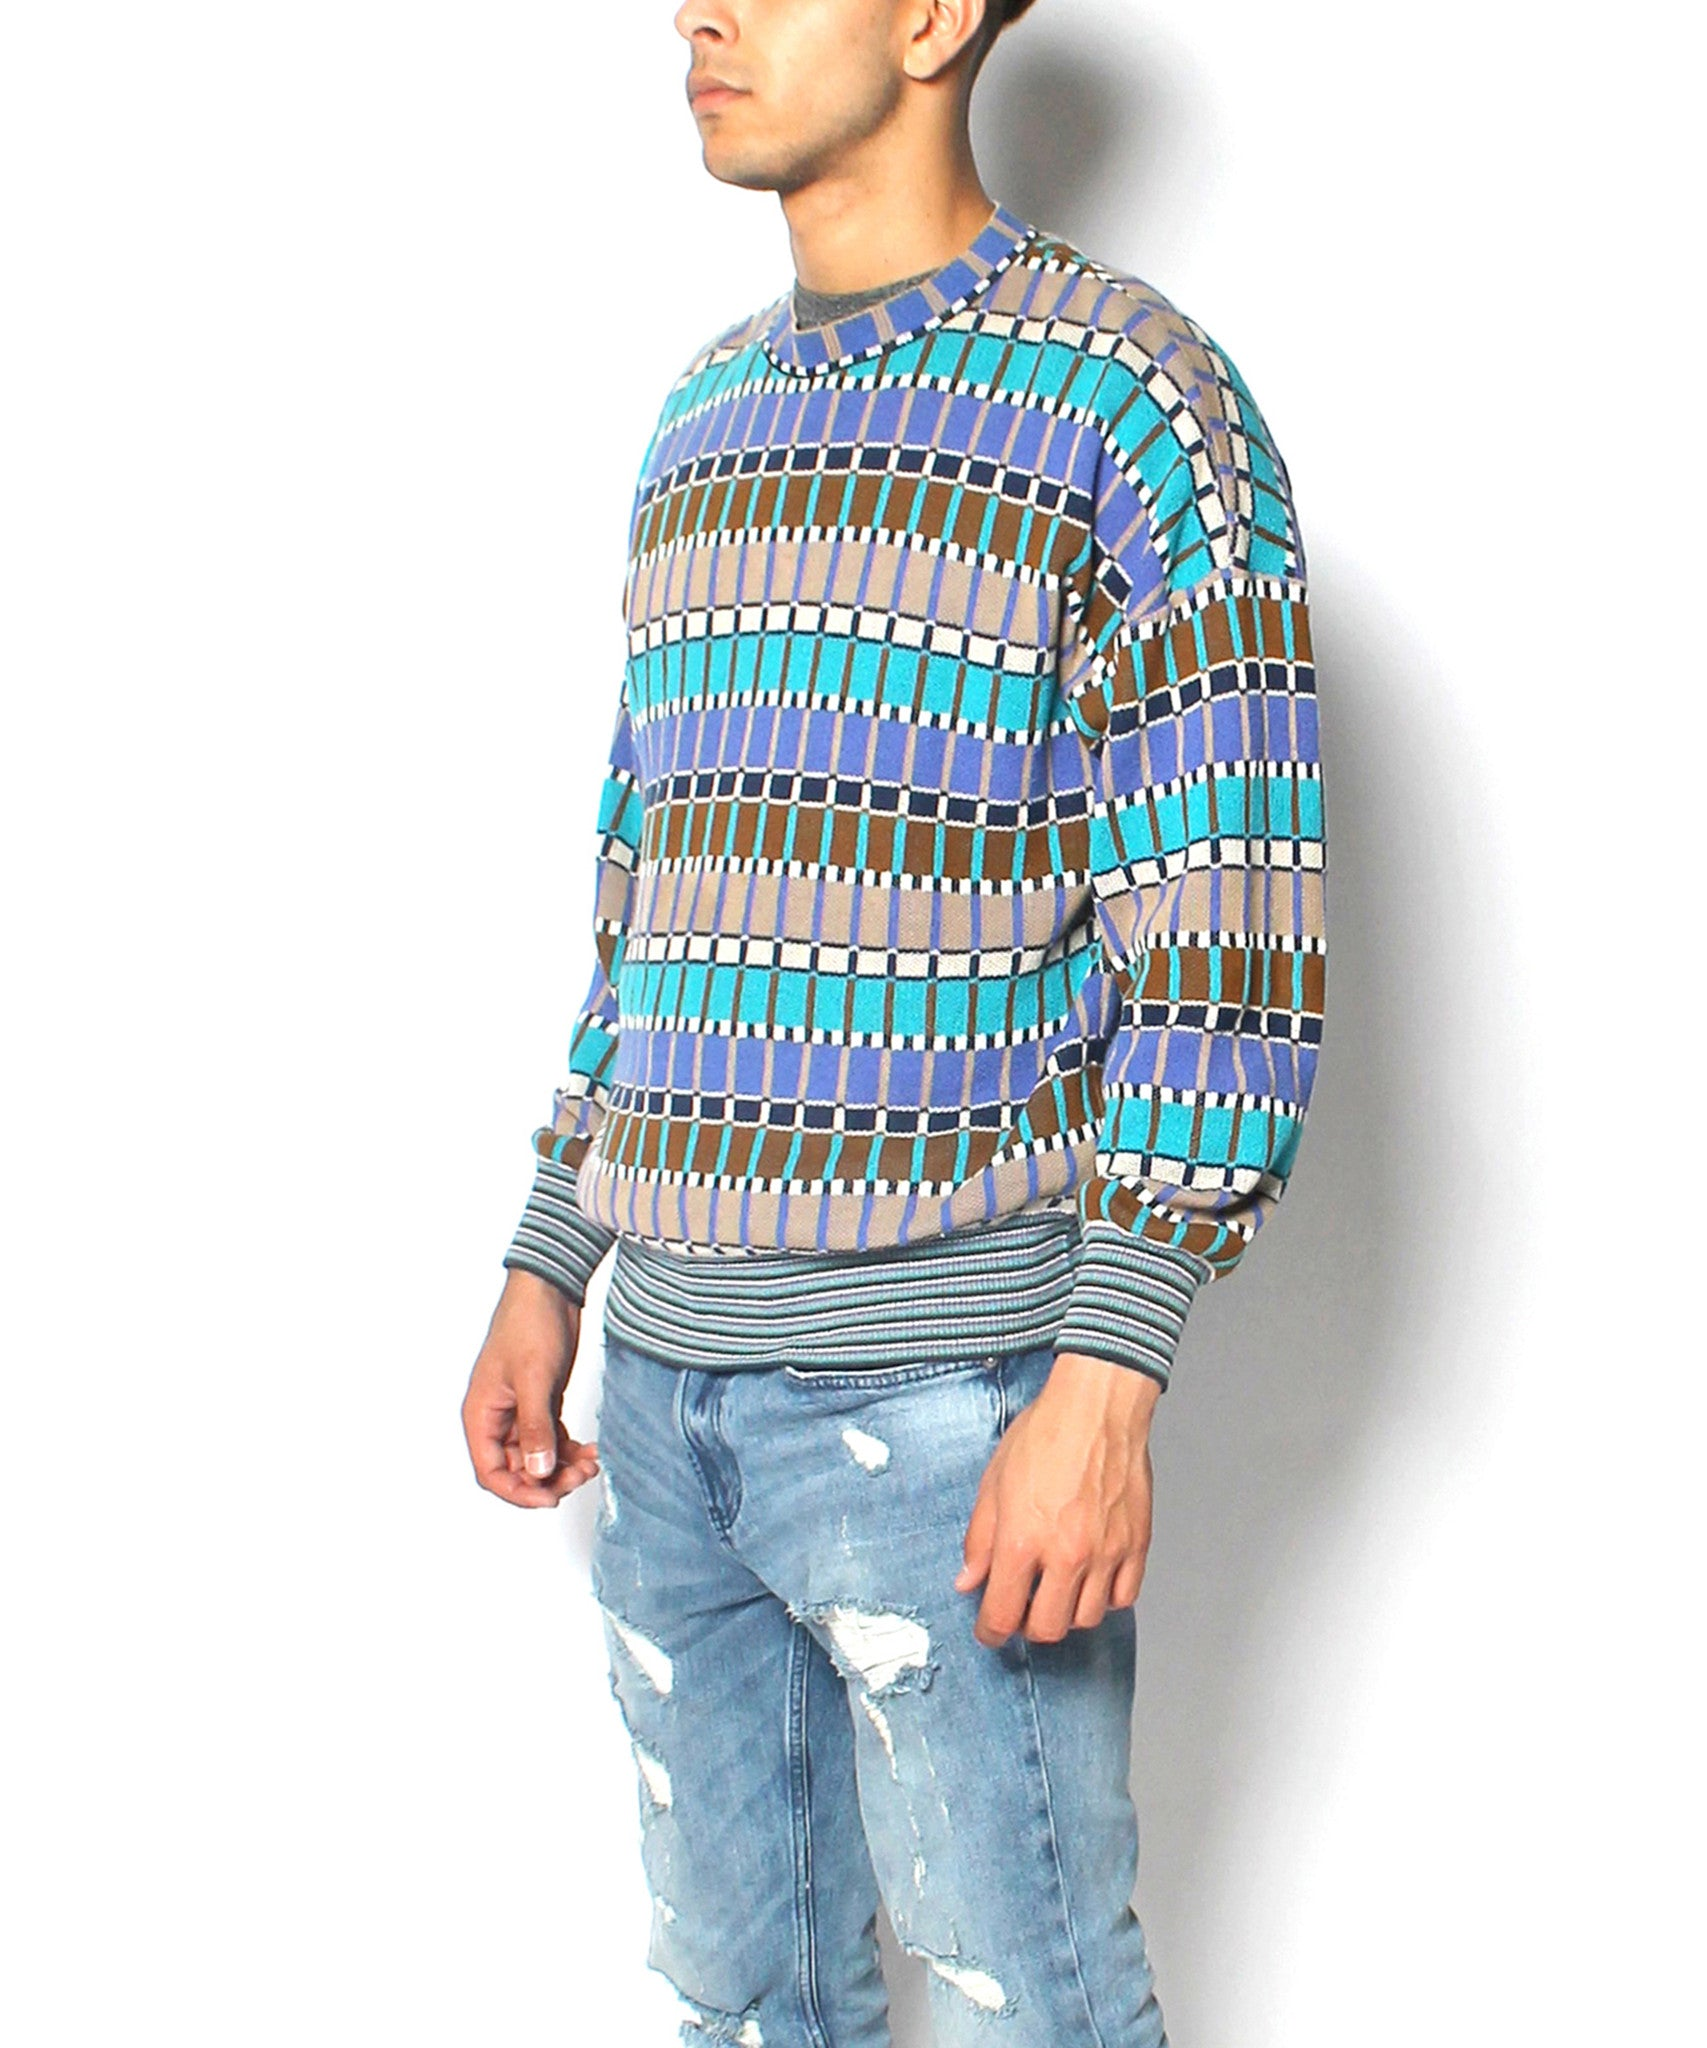 JPROGRESS: Men's Brown, Turquoise, Blk, Wht & Periwinkle Sq. Print Knit L/S Sweater - C.Madeleine's